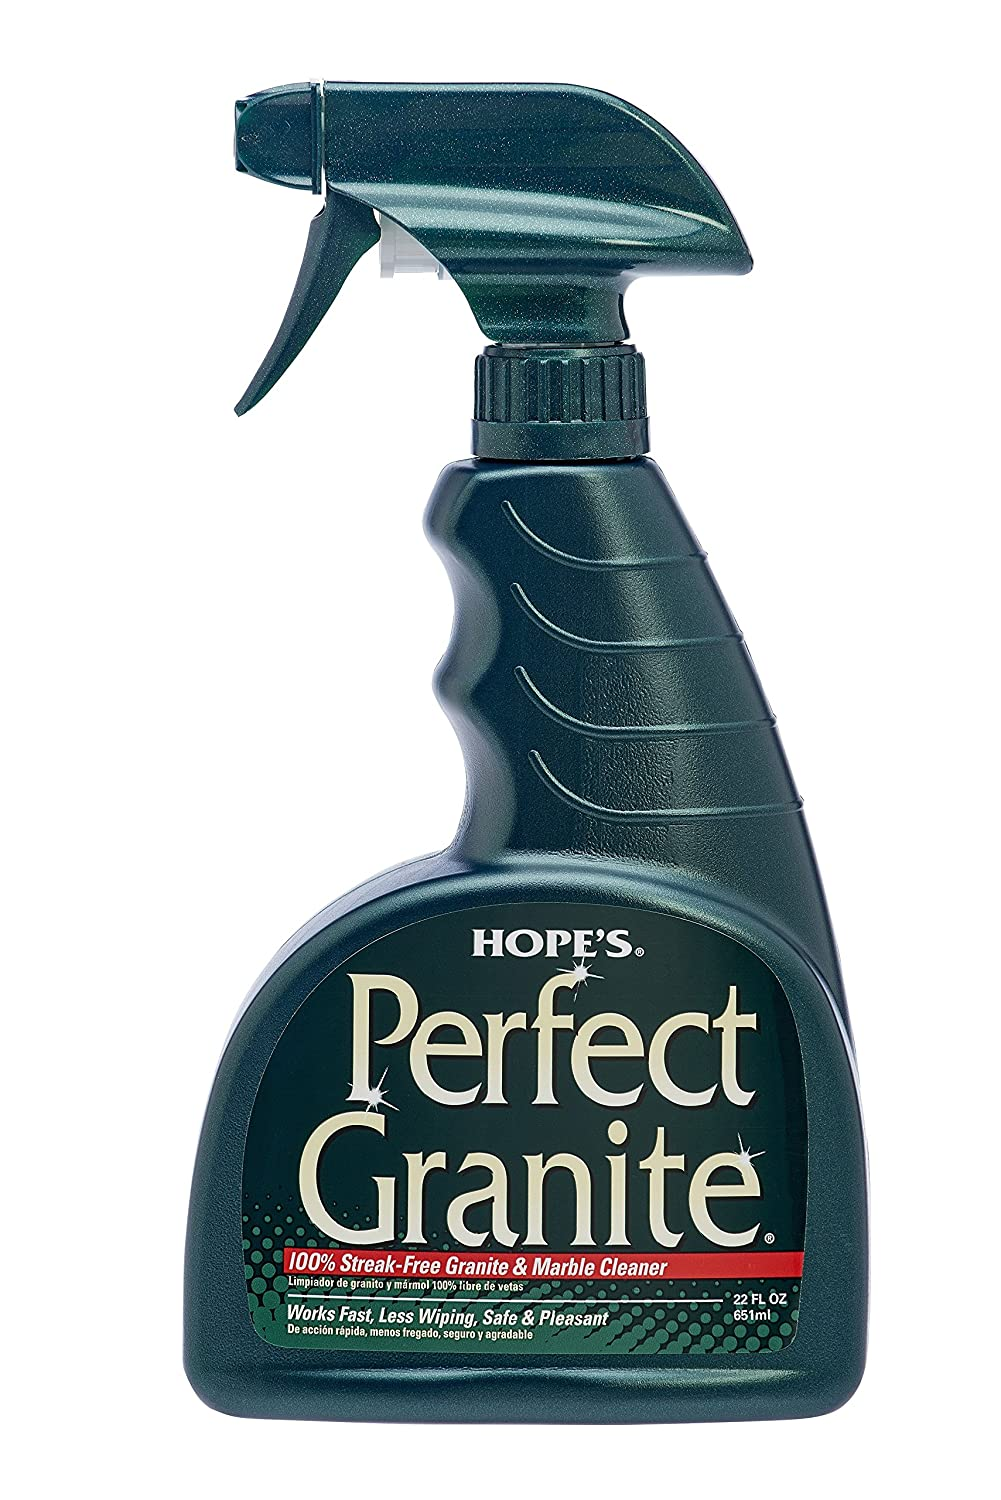 The Best Granite Cleaner 4